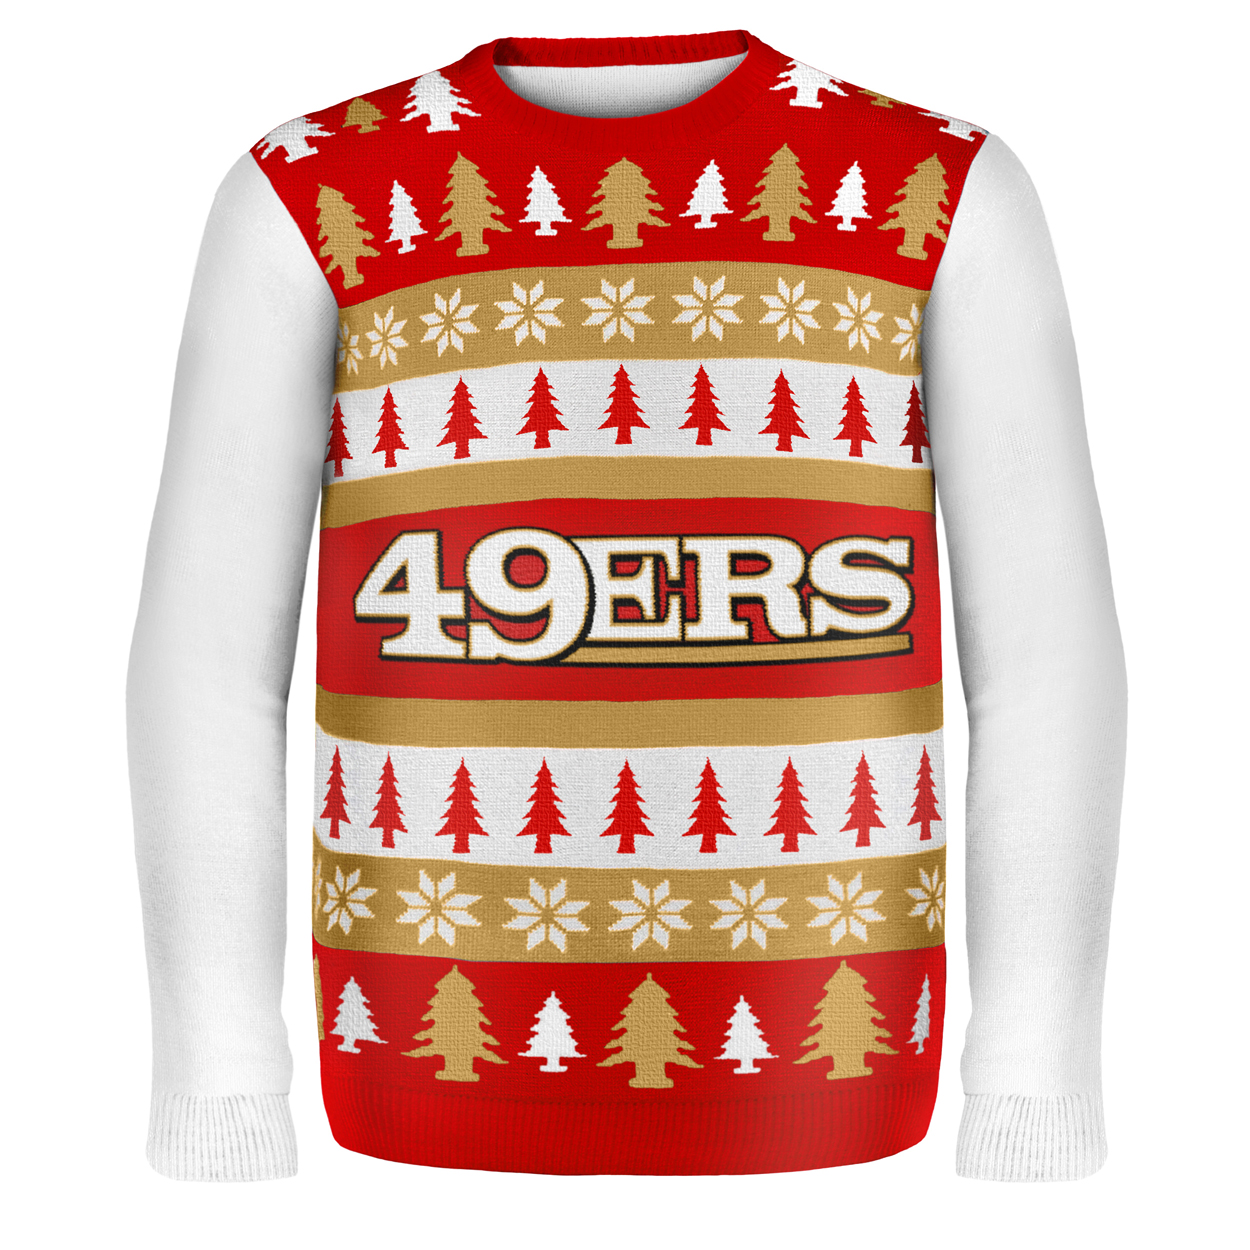 buy online 509b5 c9066 San Francisco 49Ers Wordmark NFL Ugly Sweater X-Large